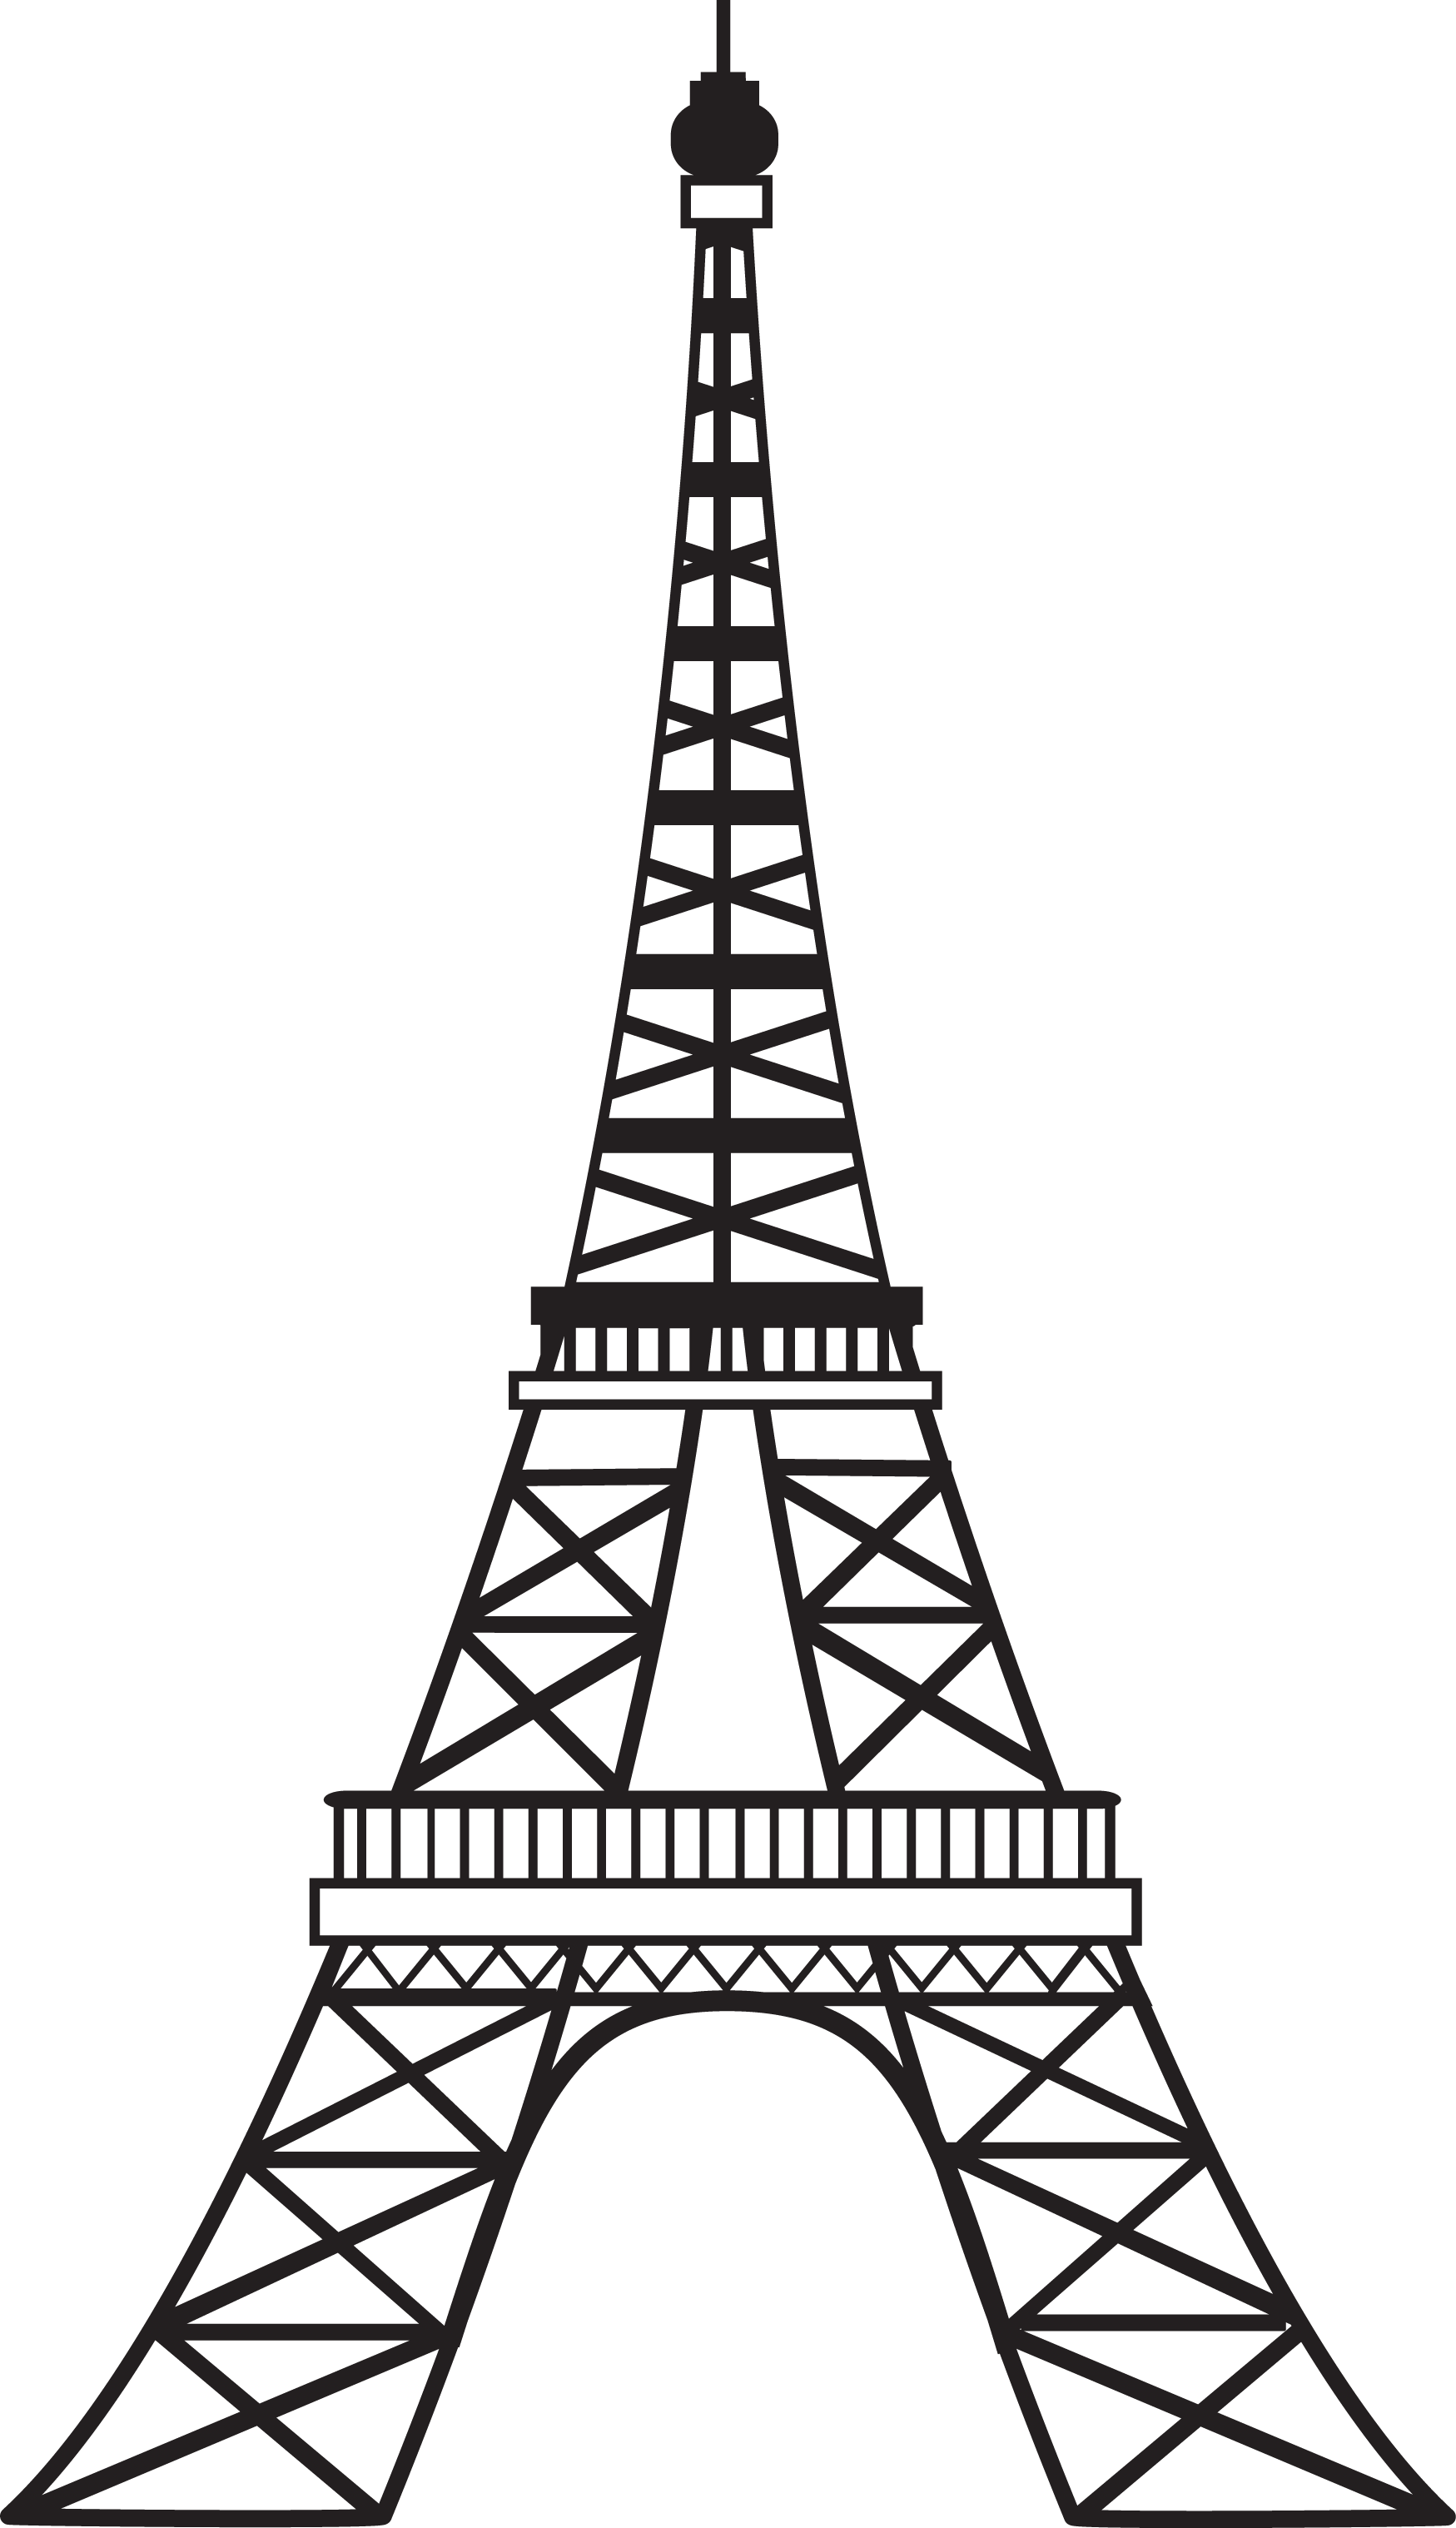 Eiffel Tower Free Png Image PNG Image - Eiffel Tower PNG